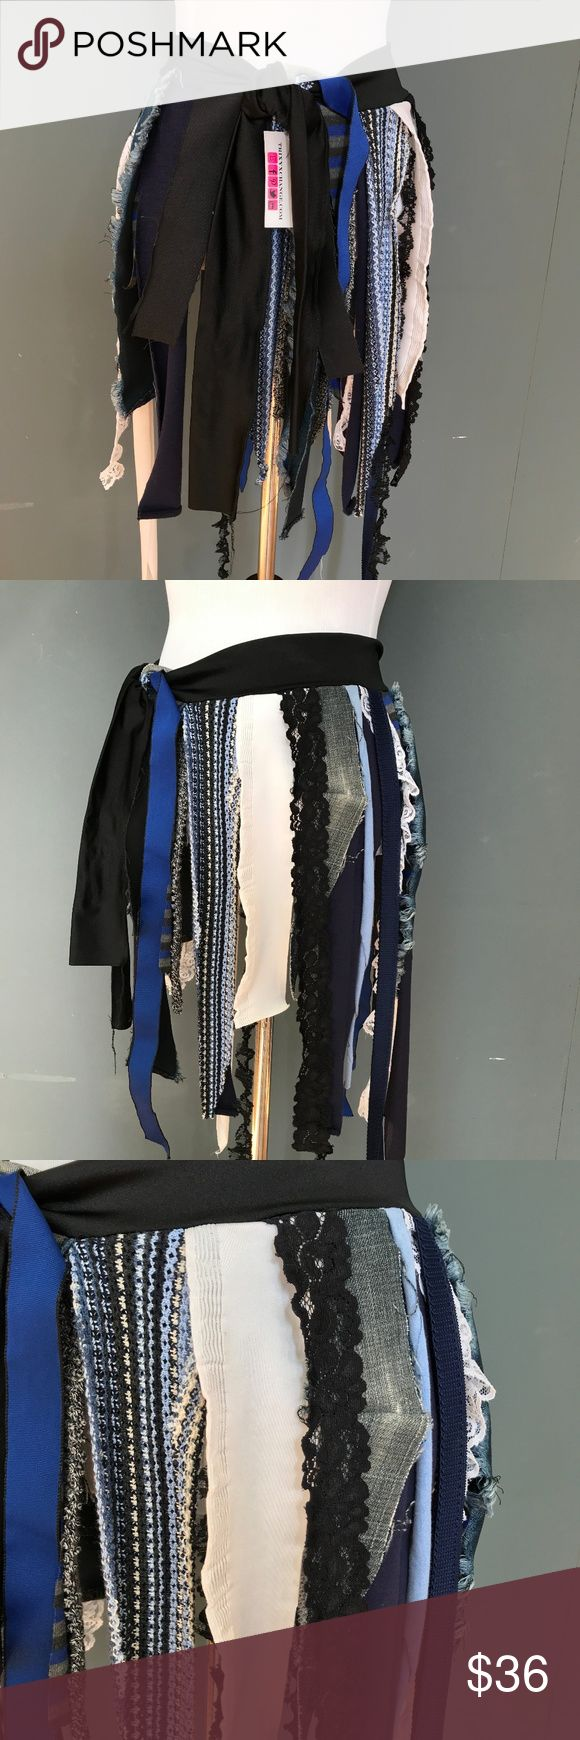 "Recycled Blue Fringe Wrap Skirt - One Size S-2XL Fringe Wrap Skirt Plus Size Small Large Blue Black Lace Club Edm Edc Clothing XL  HANDMADE & READY TO SHIP!  One of a kind! Very flexible sizing as this is a wrap skirt, and it can be wrapped around twice for smaller sizes. Made from all recycled materials.  Dance the day or night away in this upcycled skirt! Wear it over leggings, boy shorts, bikinis or other skirts.  Size: One Size Total Waistband Length: 63"" - Fringe covers 31"" of the…"